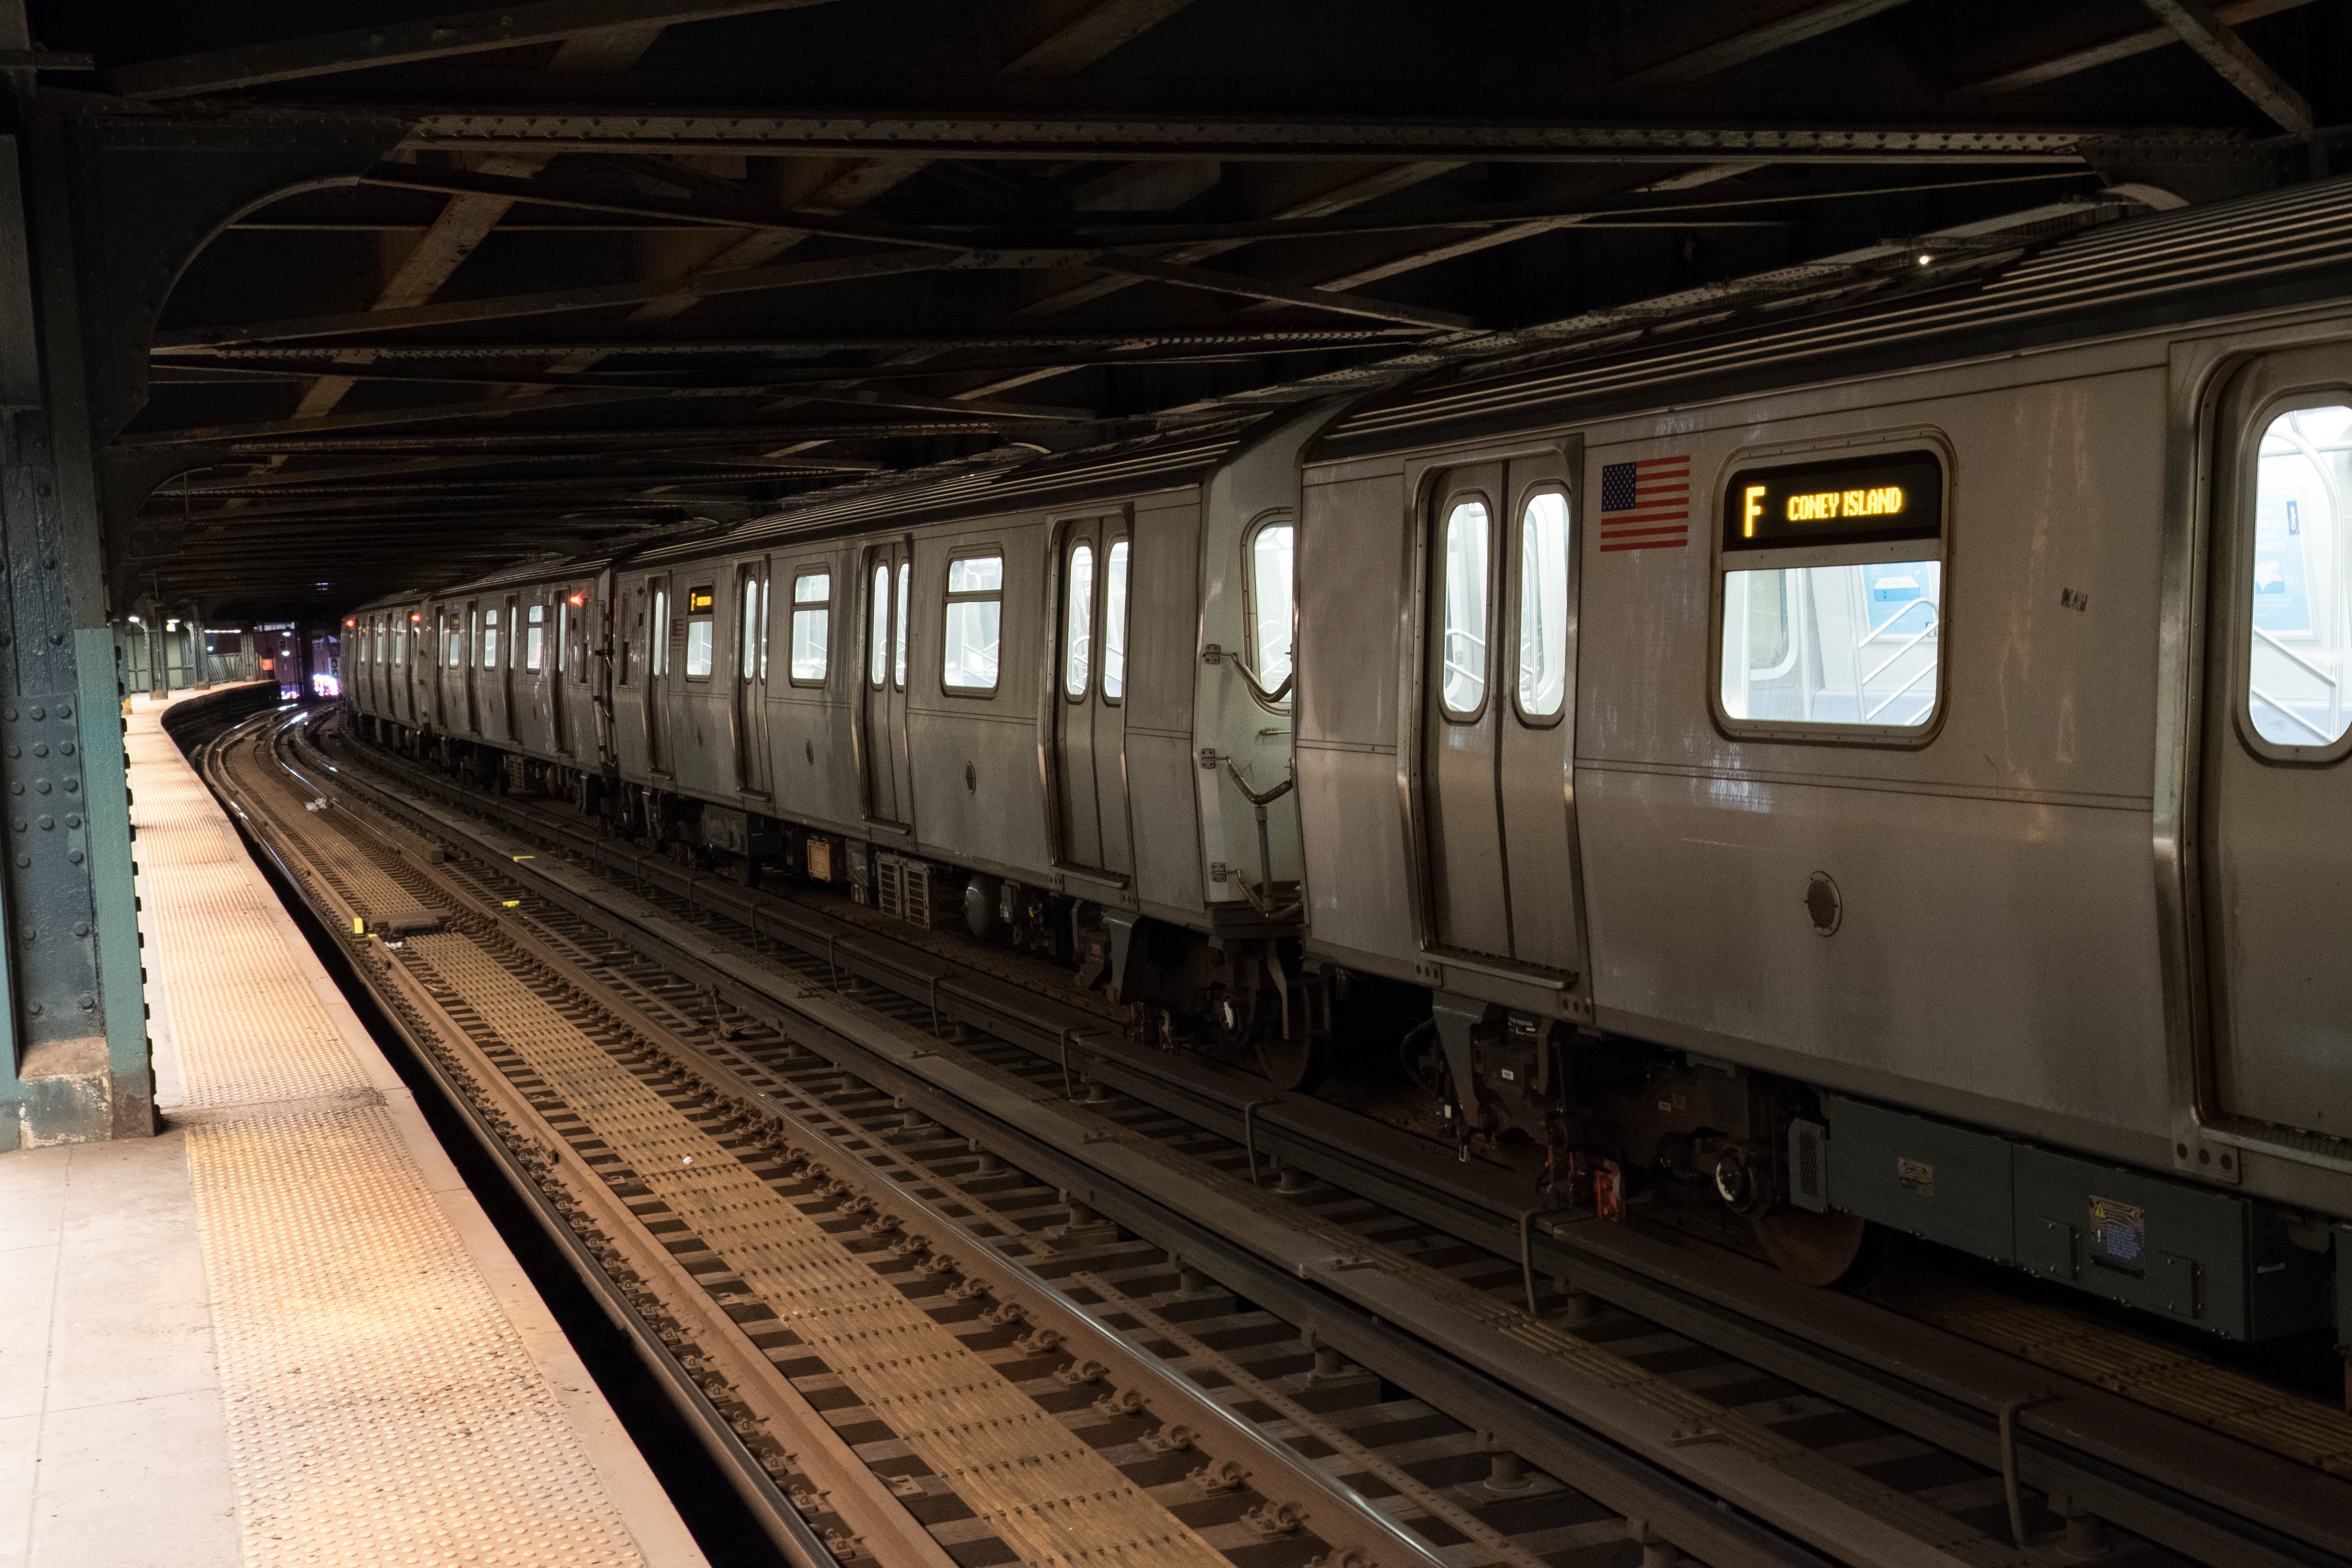 An F train running underground in the NYC subway system.